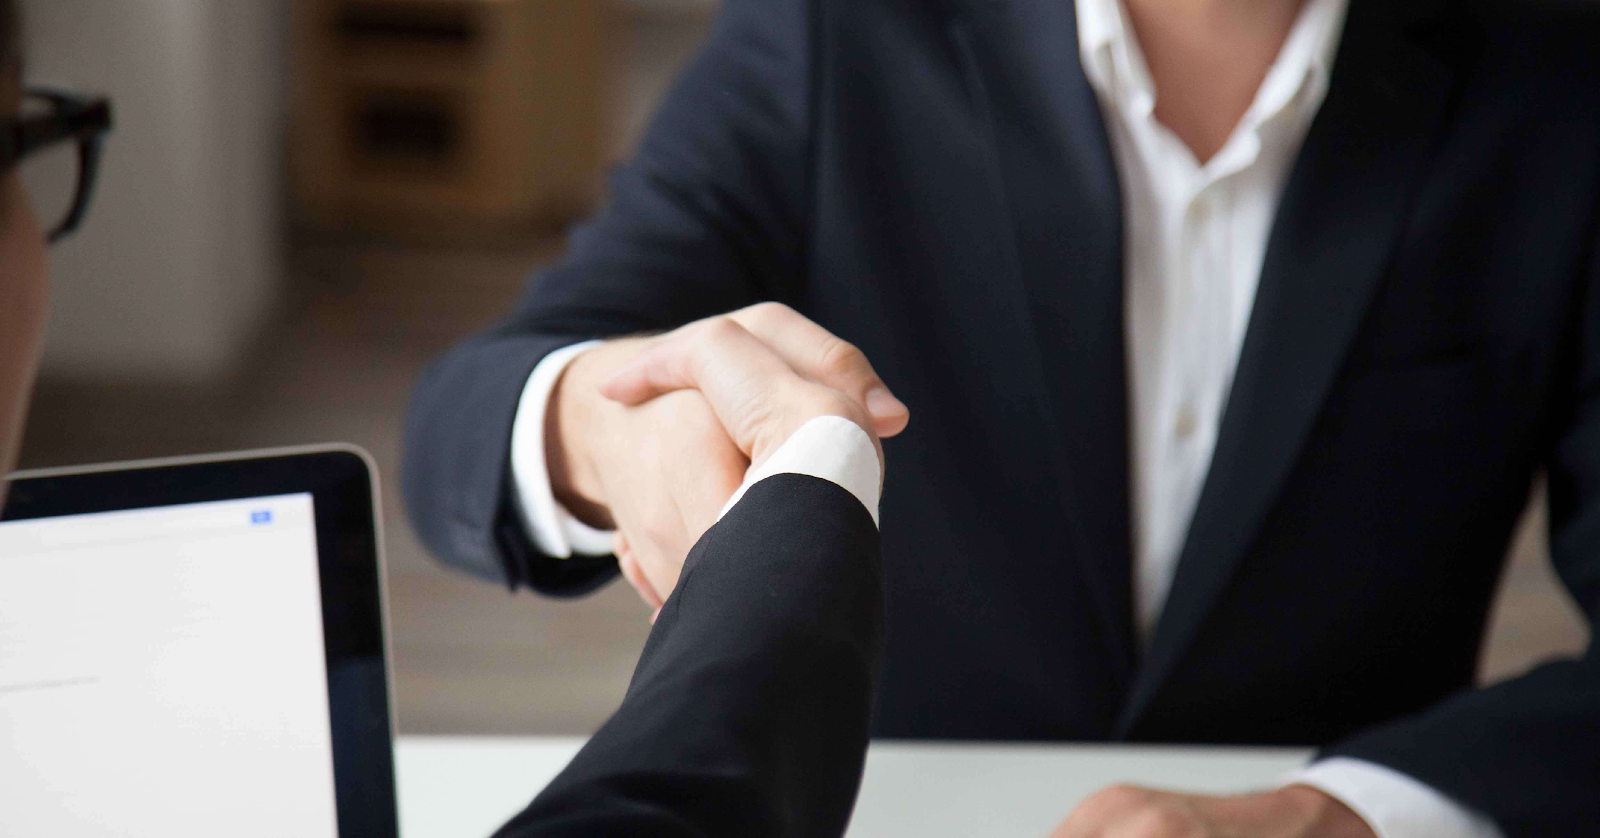 Business partners are shaking hands to reach an agreement